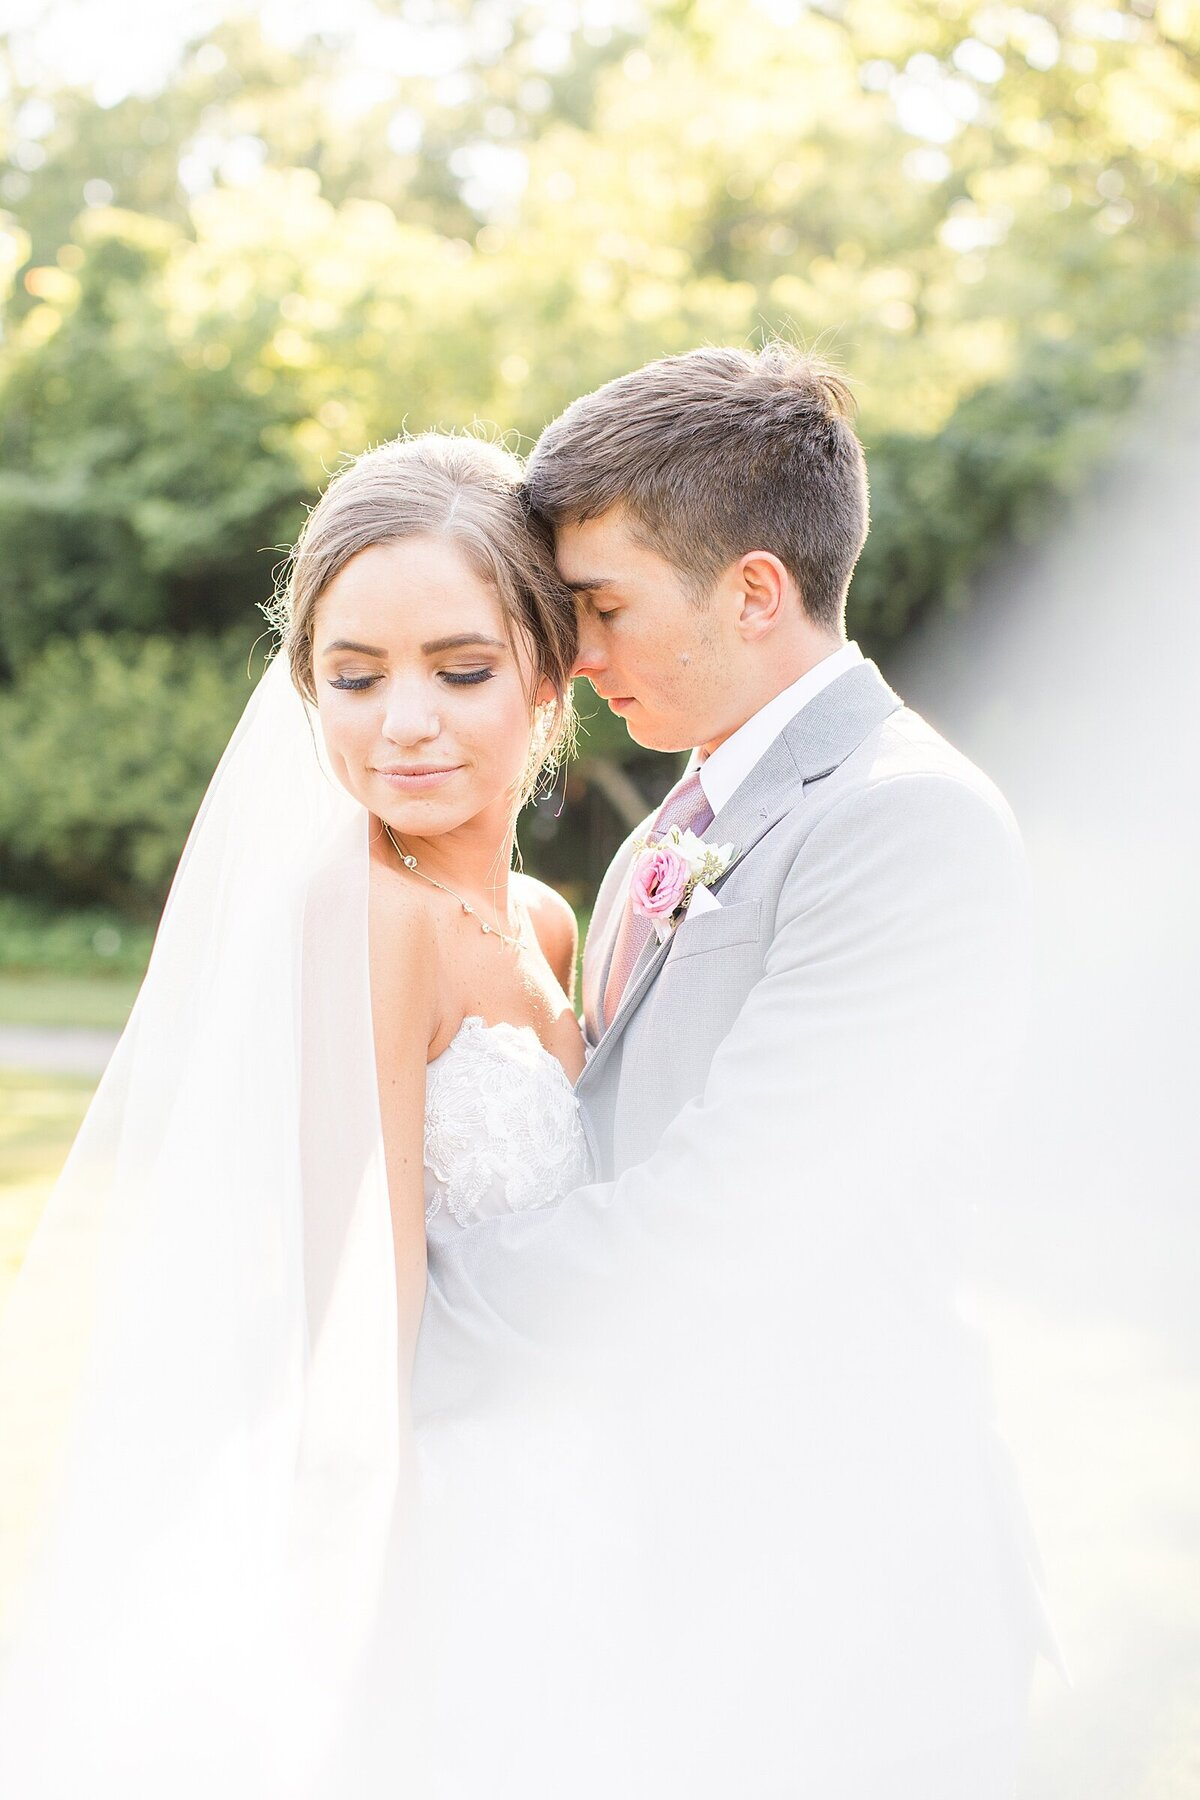 Kara Webster Photography | Meredith & Tyler | University Of Dayton Marriott Wedding Photographer_0079